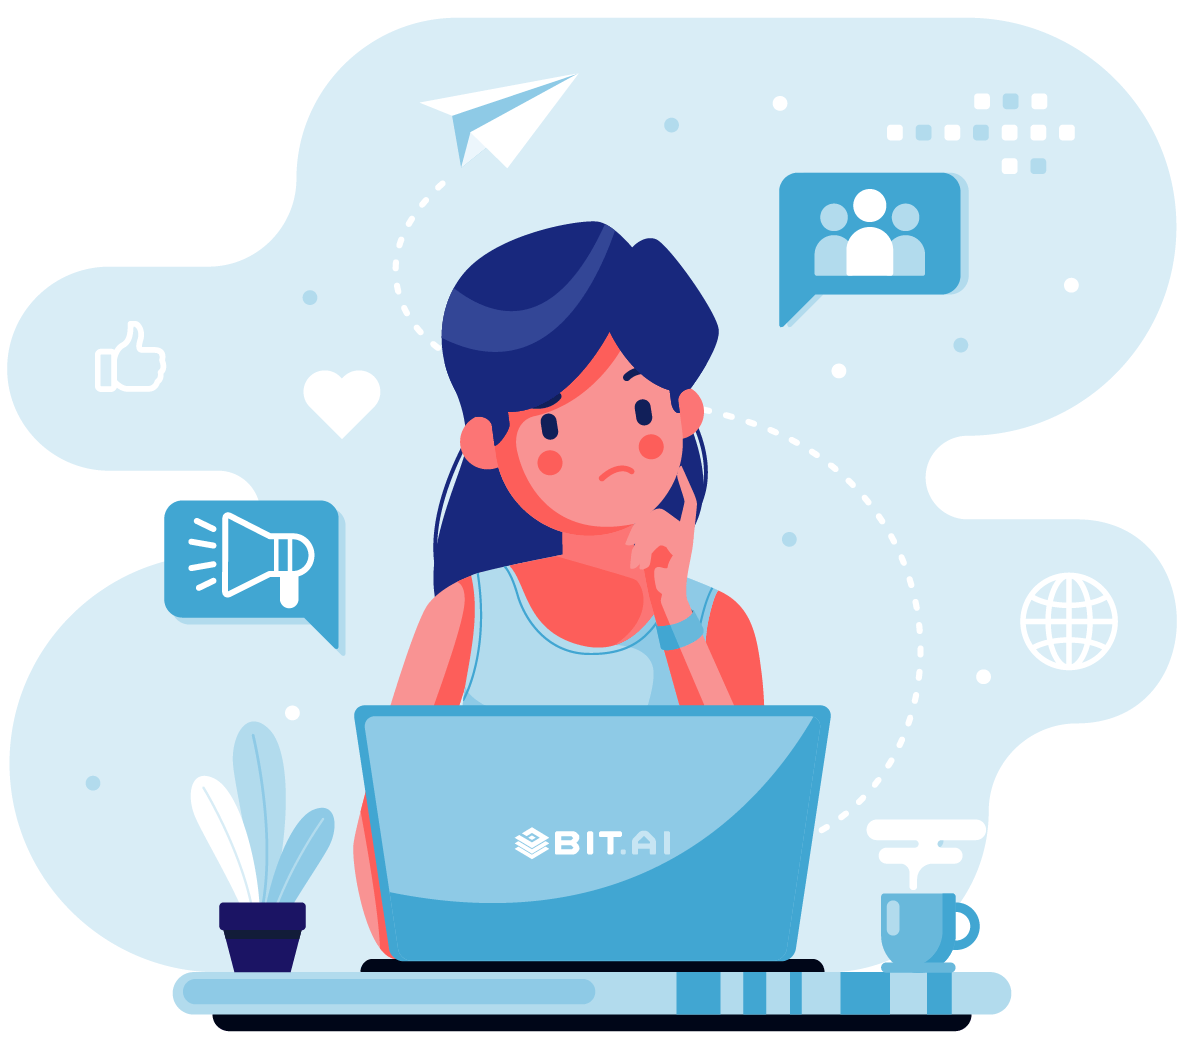 Social media manager as an online business idea